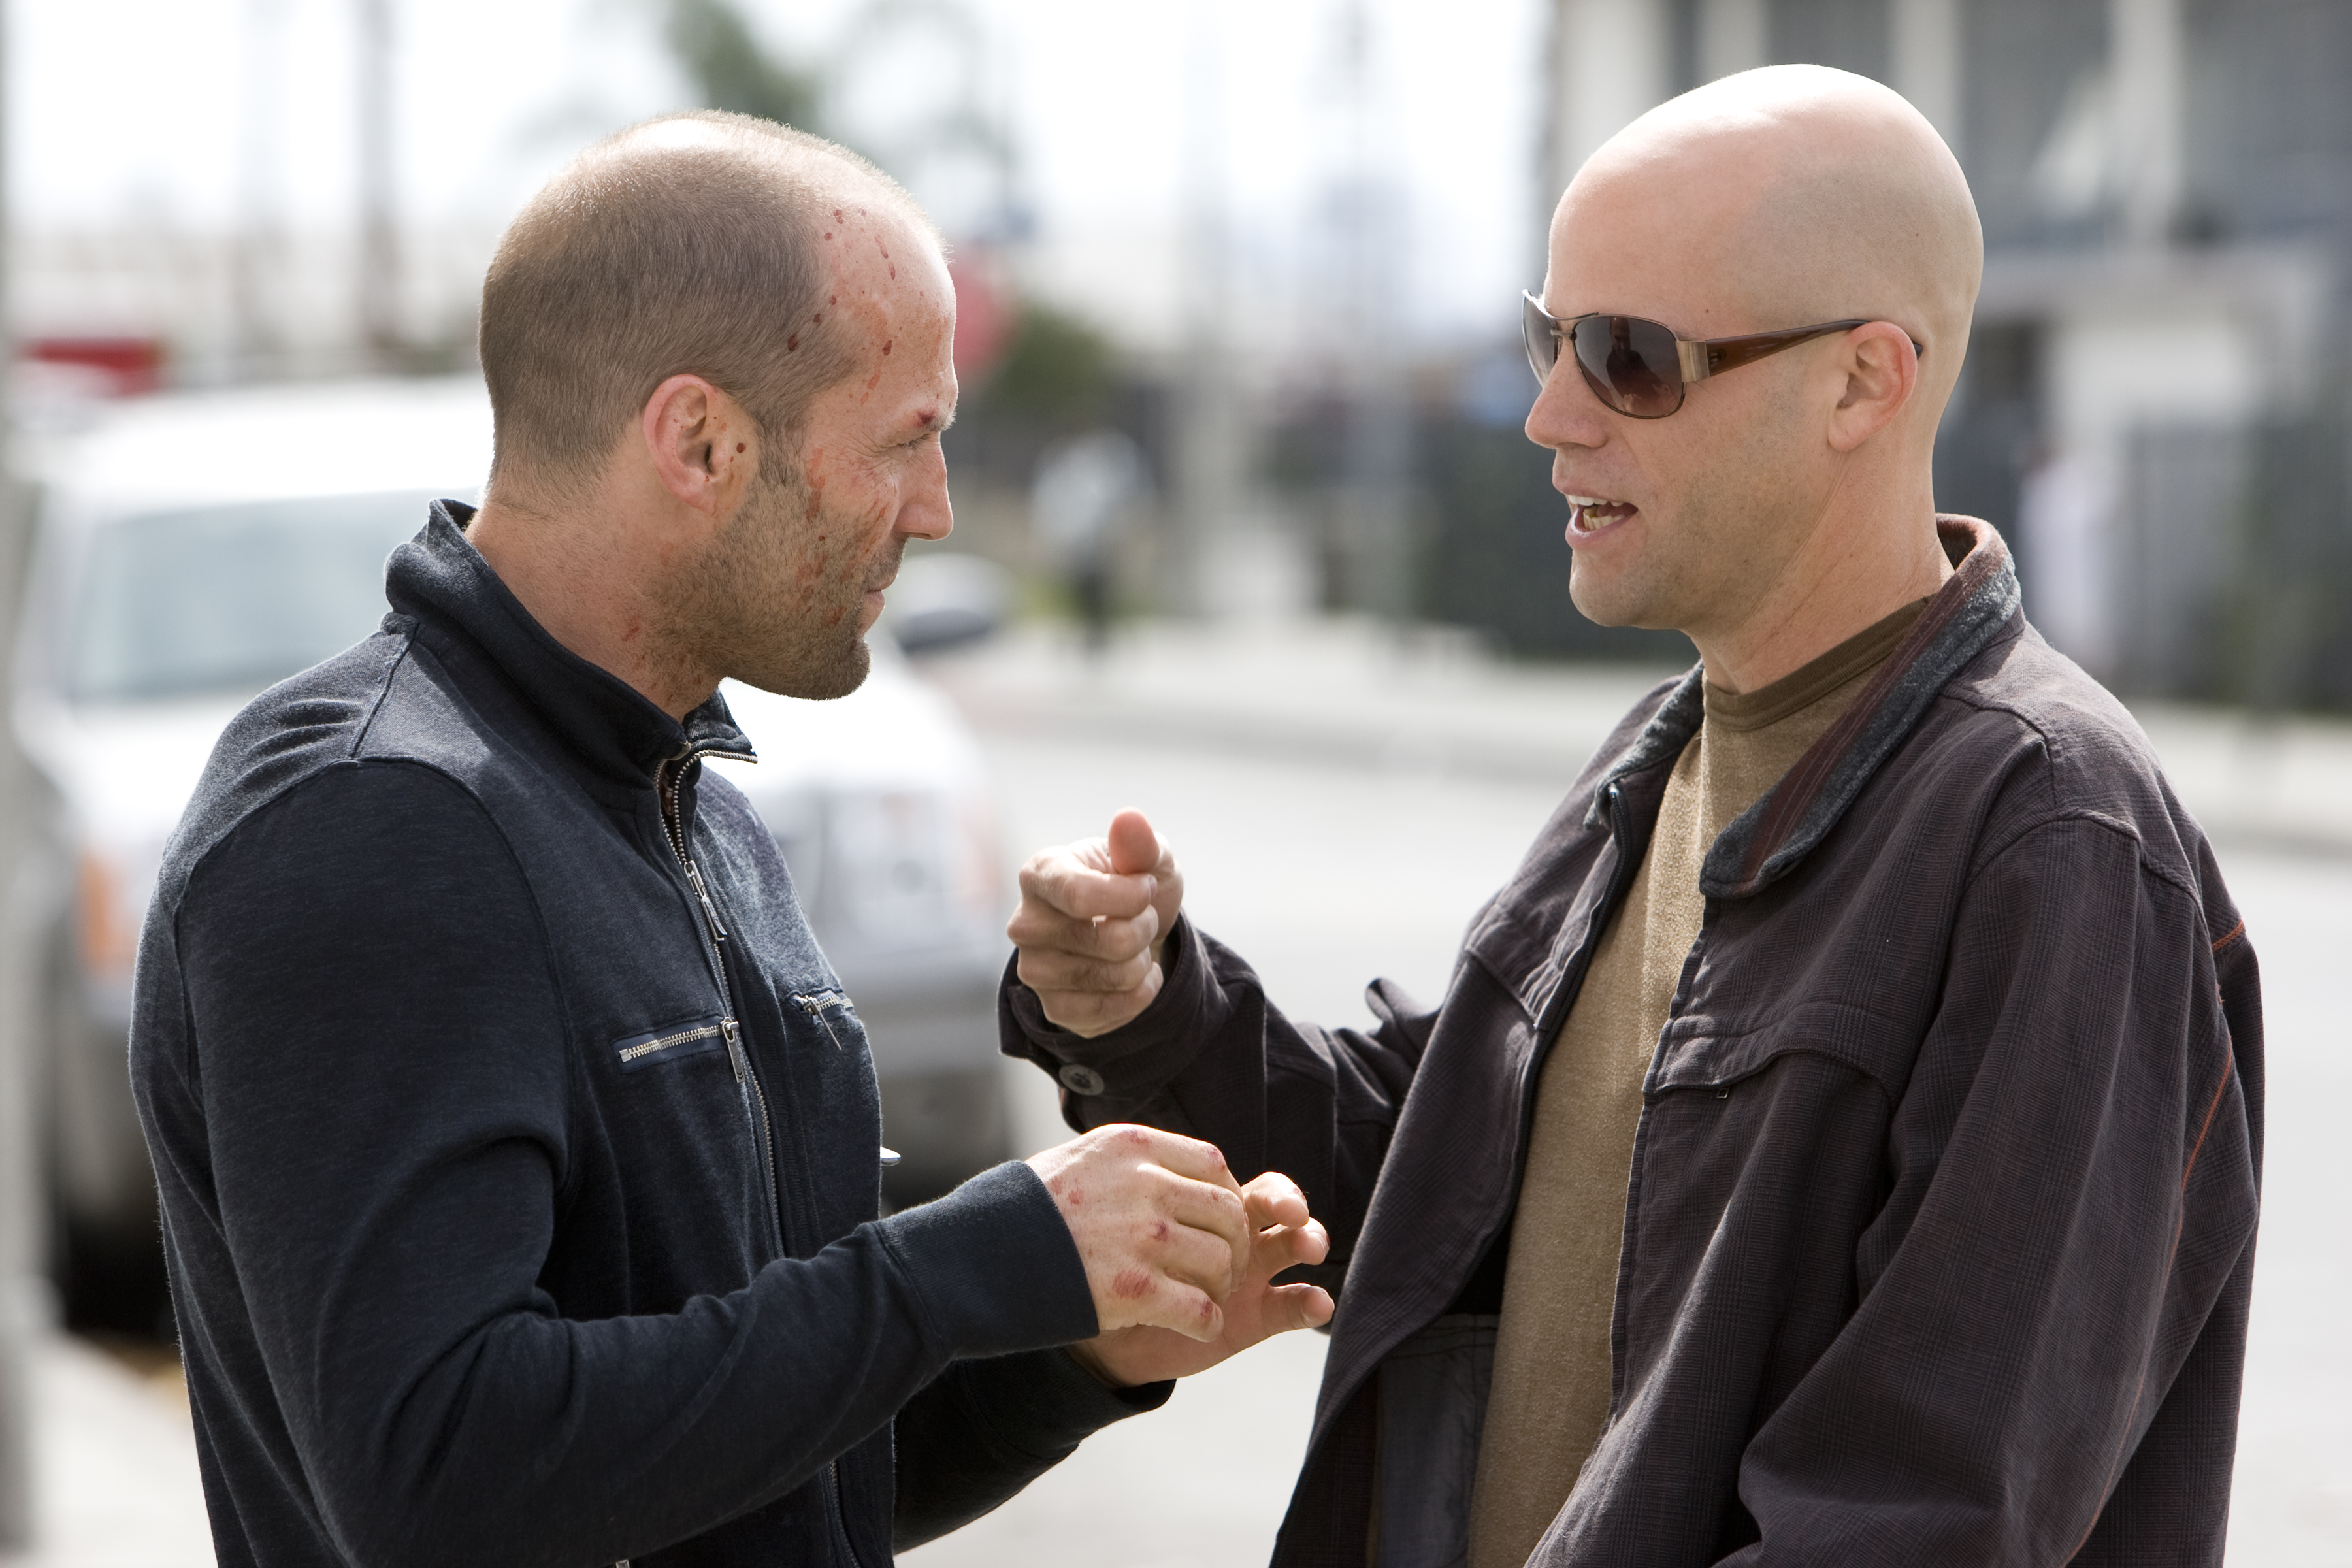 Jason Statham and Brian Taylor in Crank: High Voltage (2009)